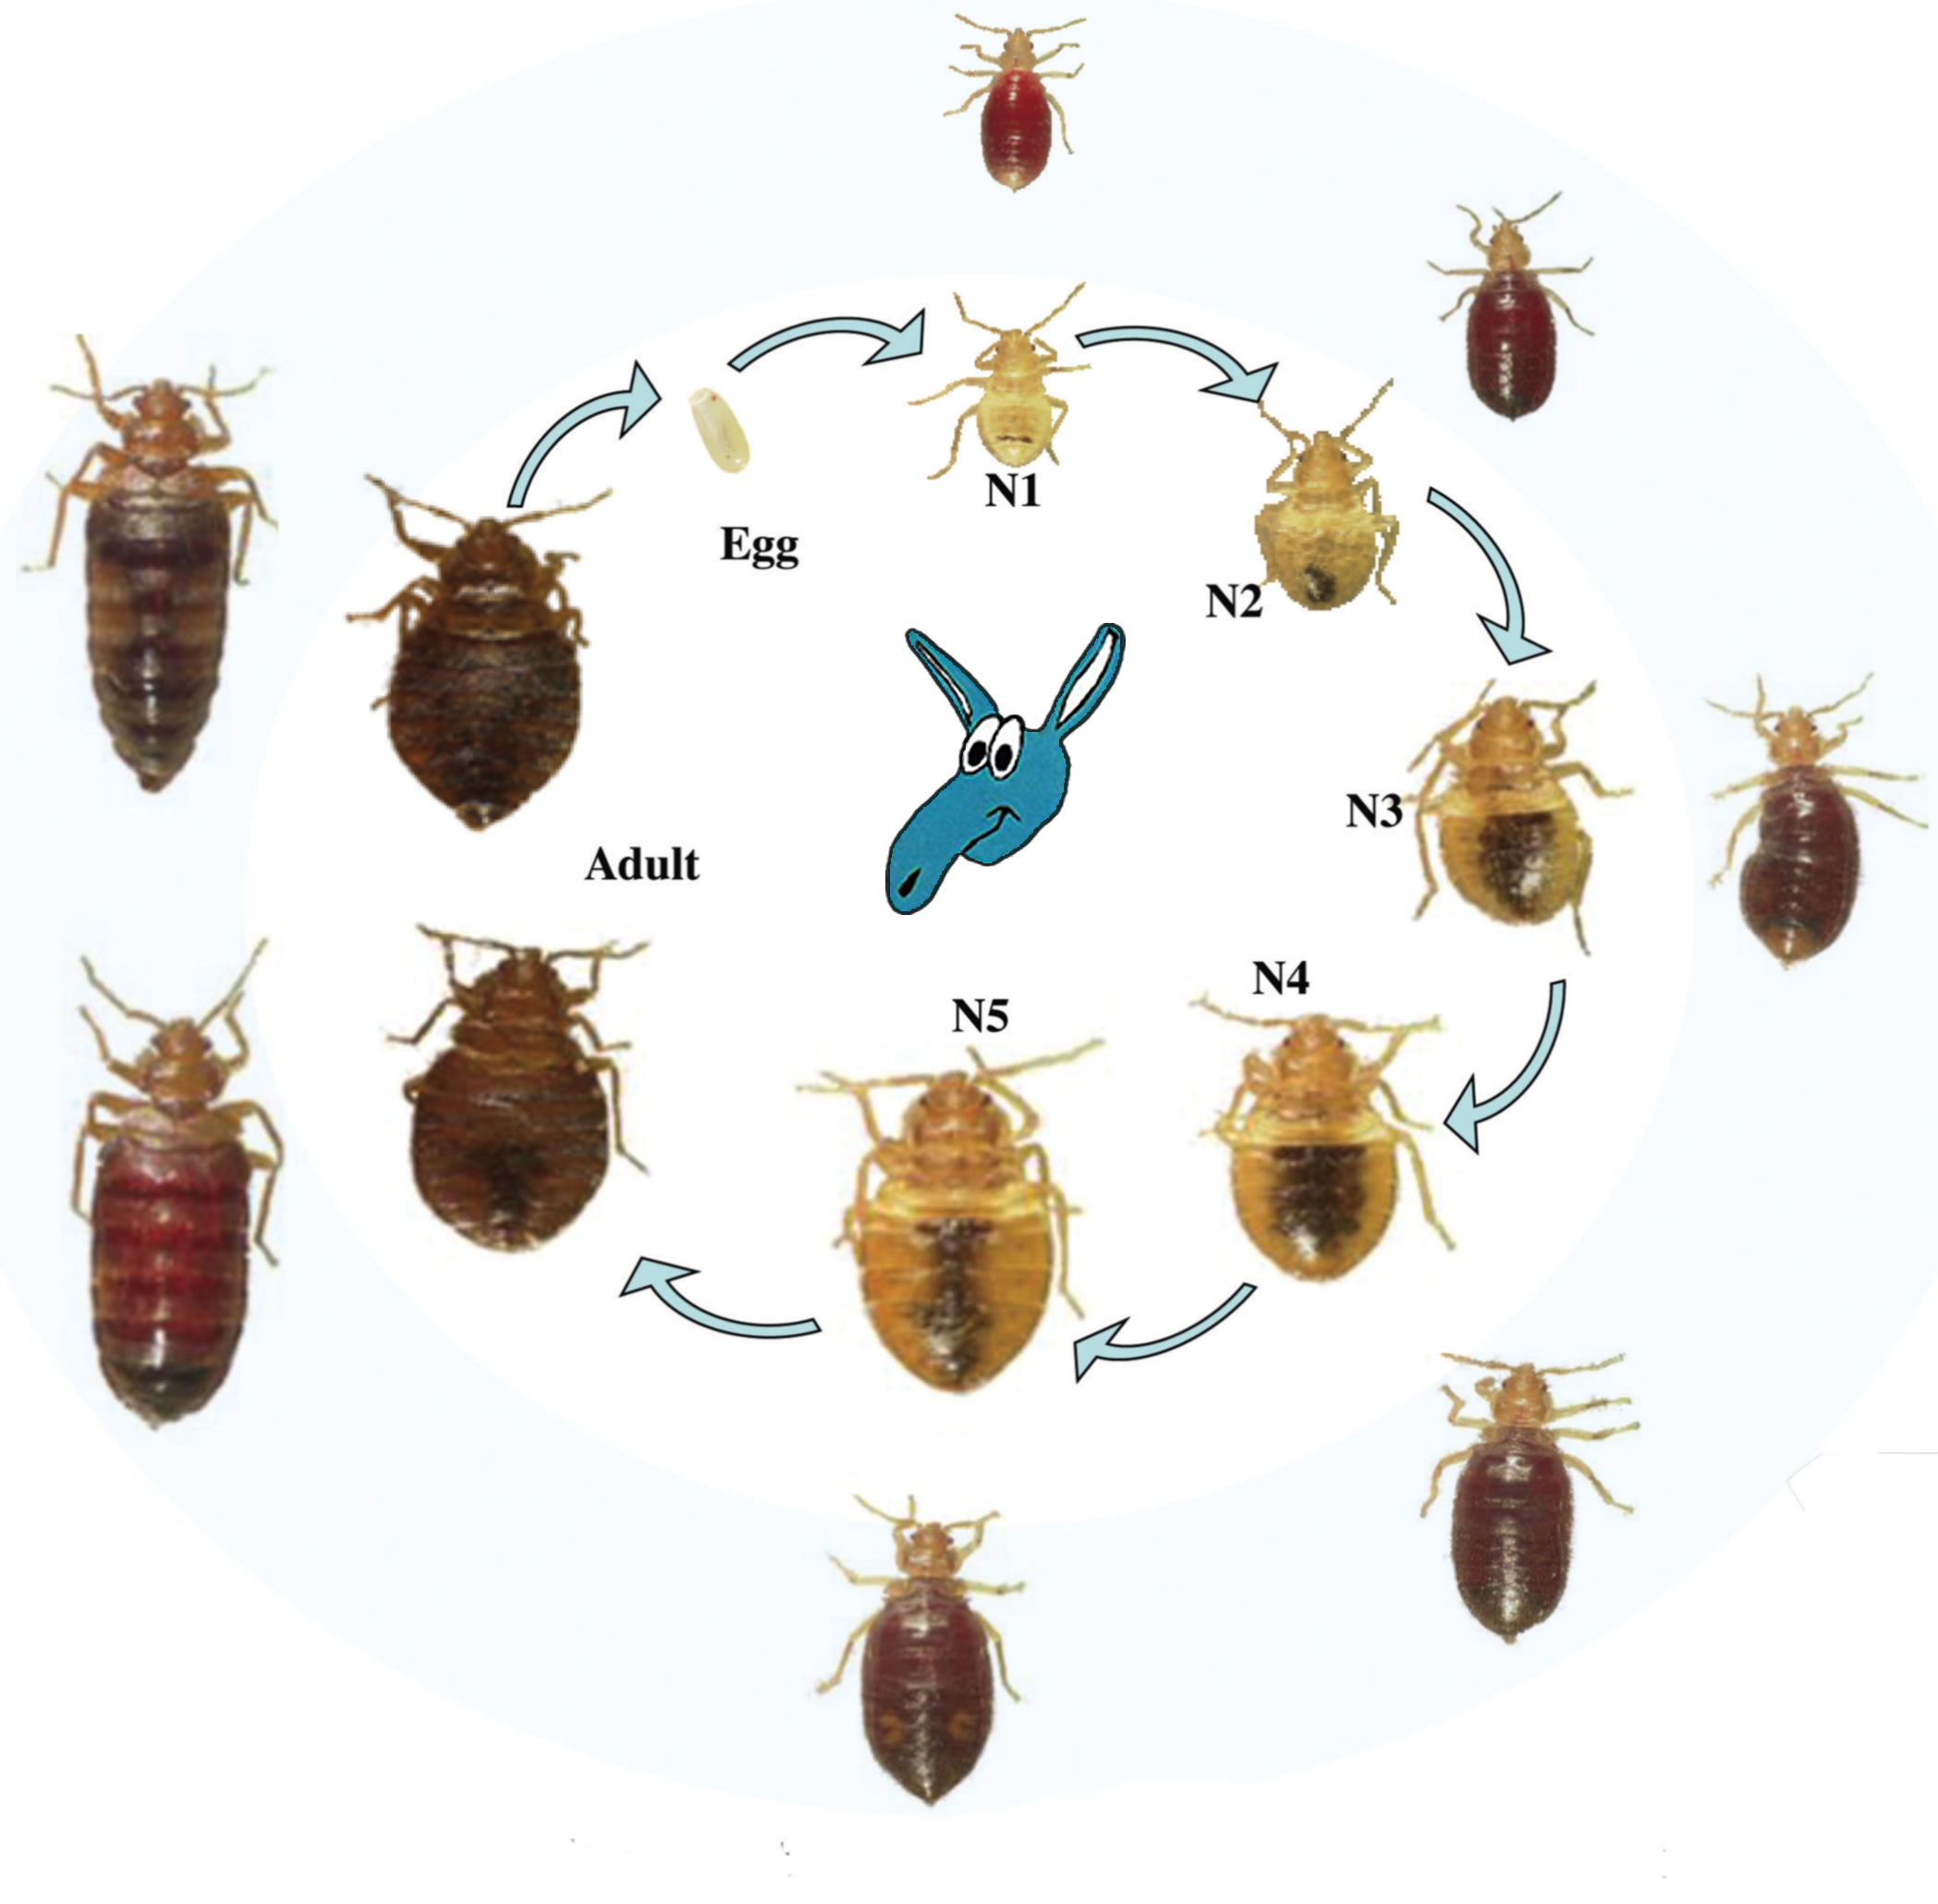 The Life Cycle Of A Bed Bug Bedbugs What You Need To Know